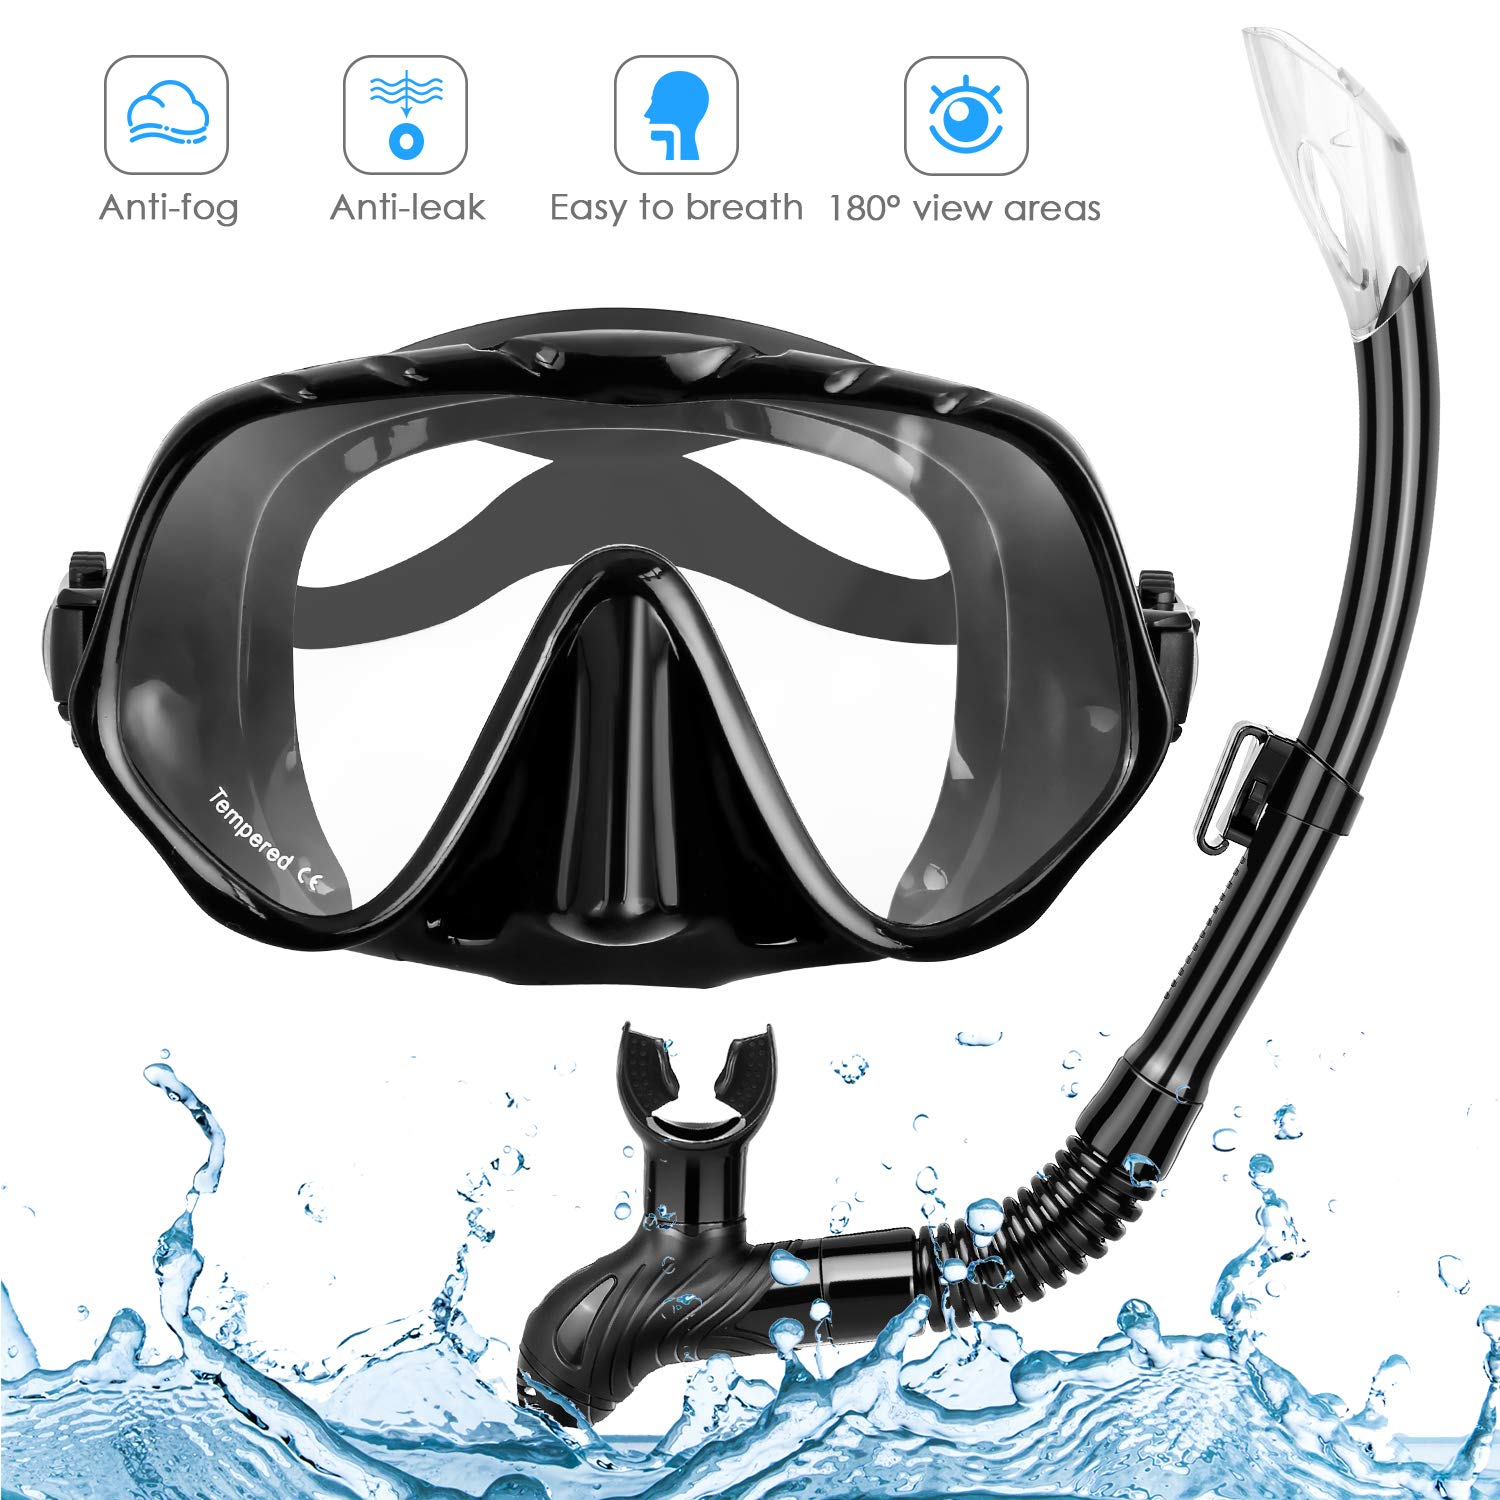 Amzdeal Snorkel Mask, Snorkeling Diving Mask Set with 180° Clear Vision and Free Breathing Tempered Glass Anti-Leak Guard with Adjustable Straps Professional Snorkeling Set by Amzdeal